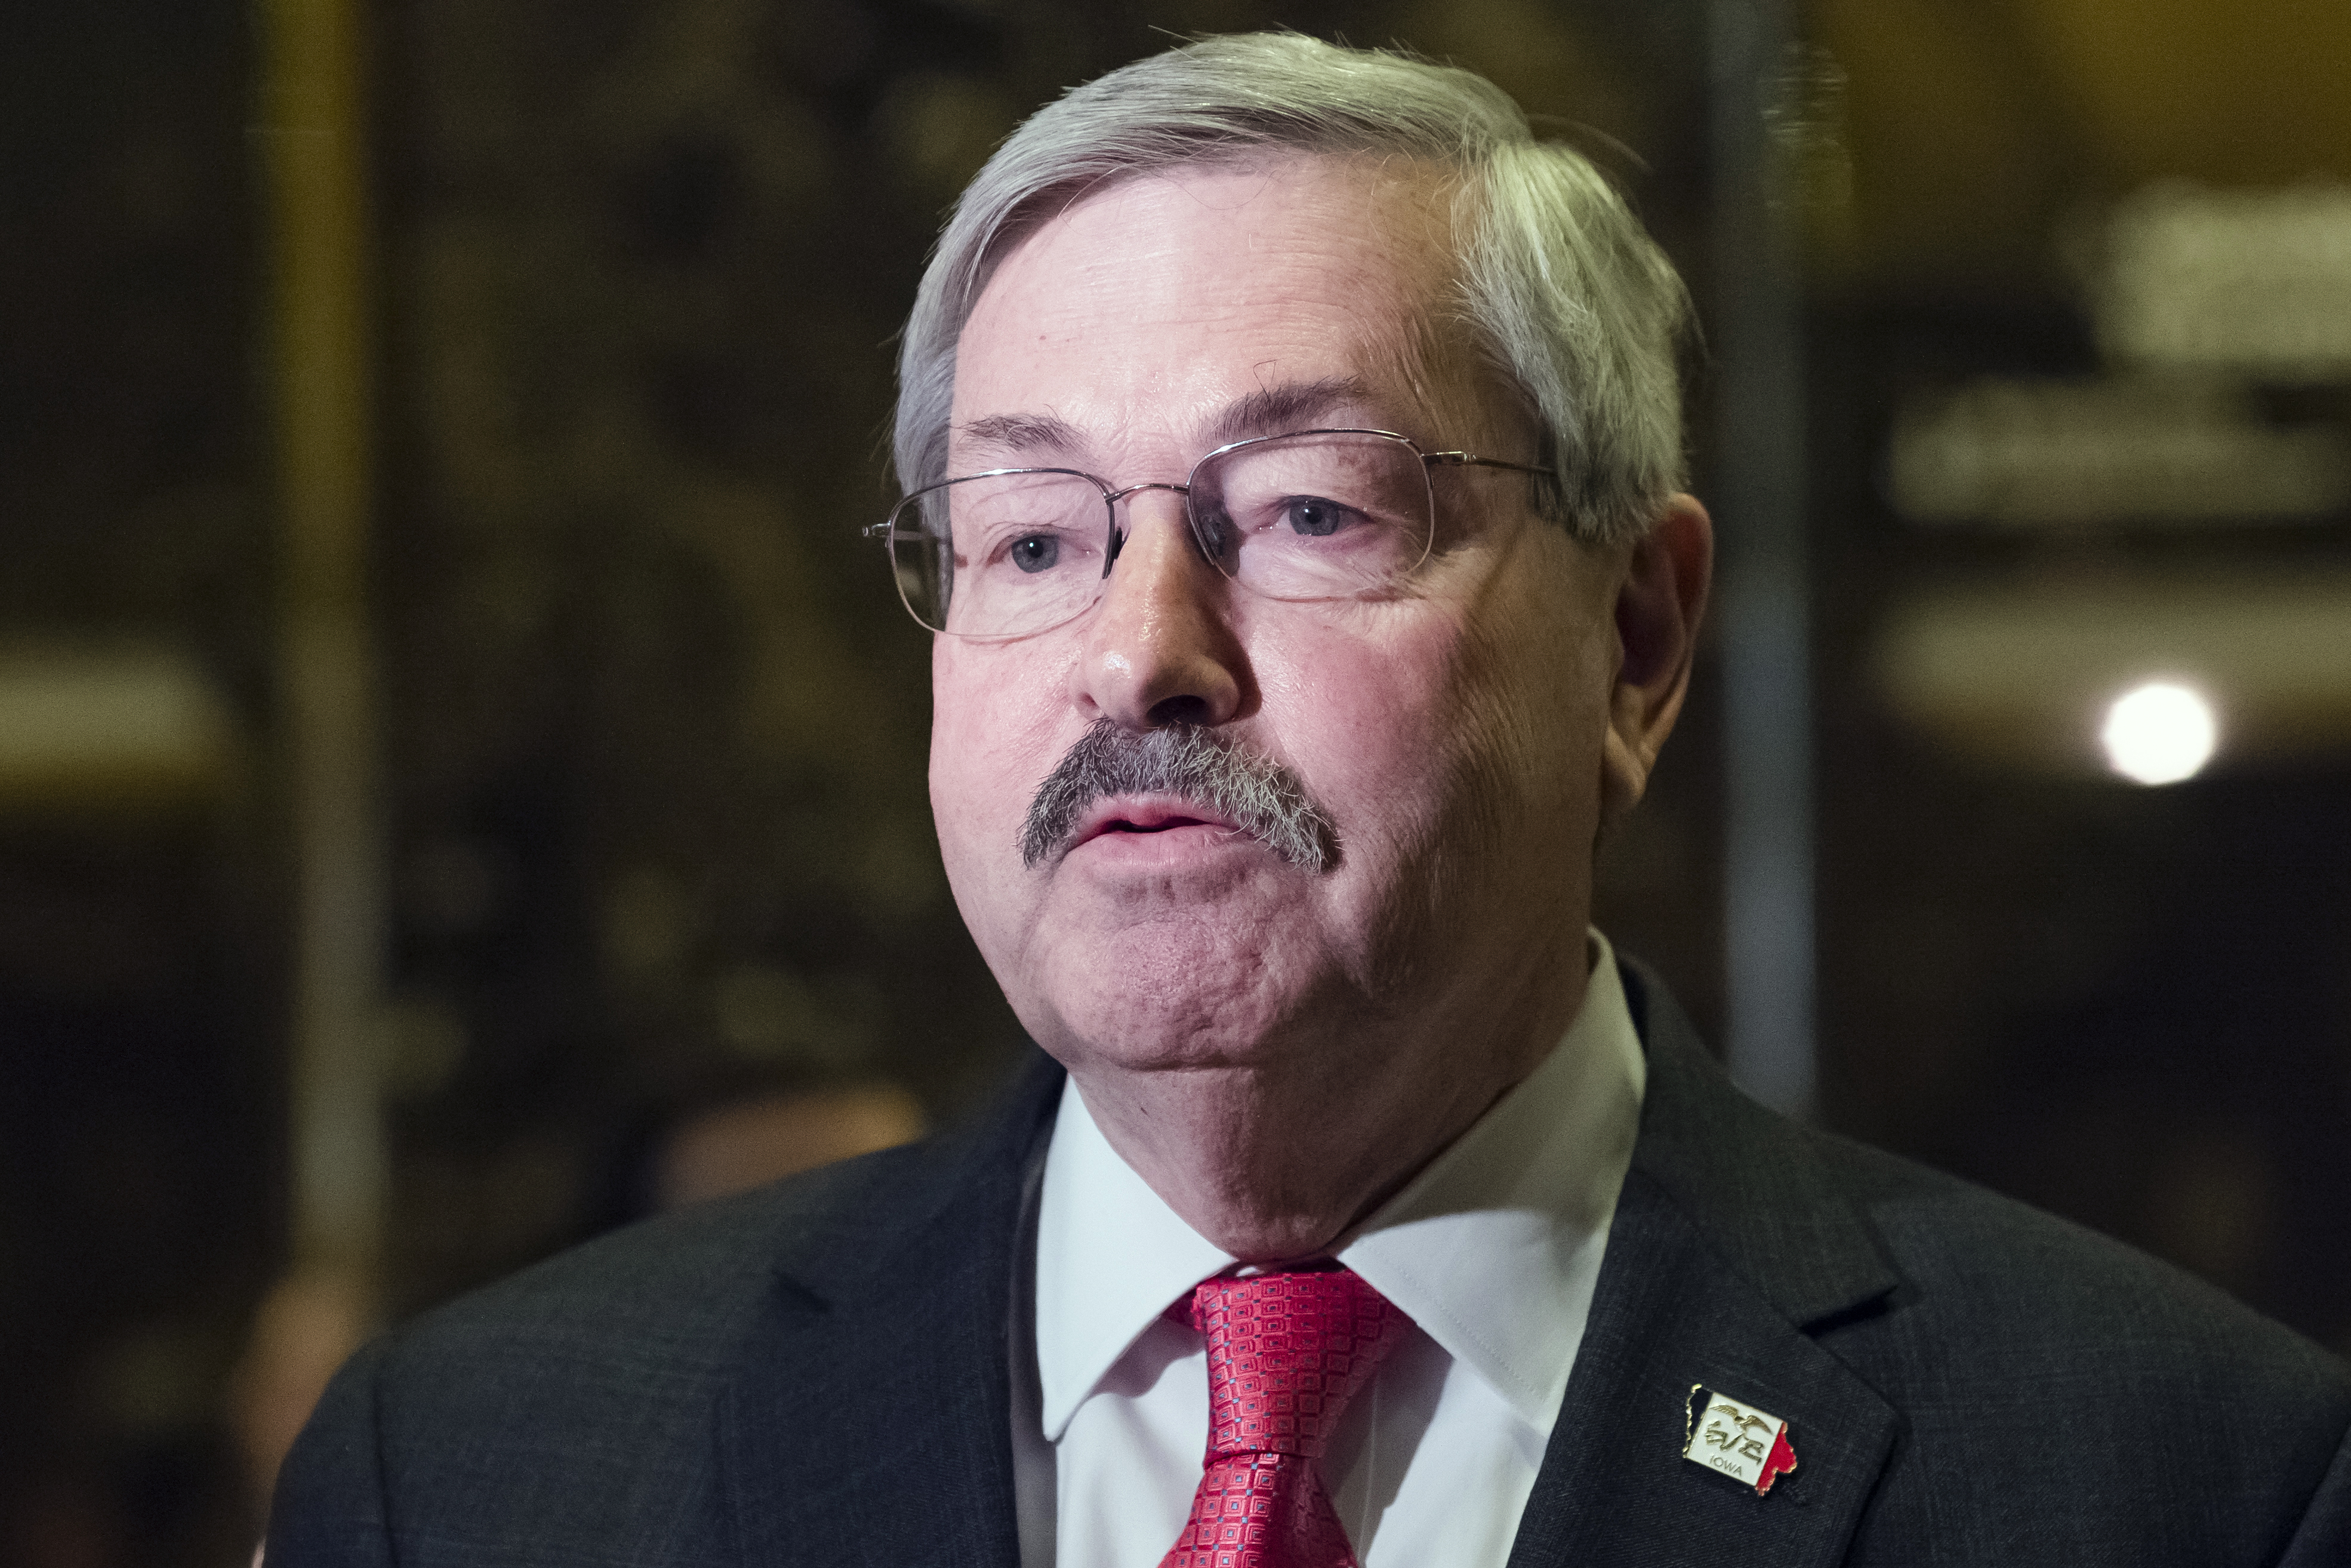 Terry Branstad, then governor of Iowa, speaks to members of the media in the lobby at Trump Tower in New York, U.S., on Tuesday, Dec. 6, 2016.